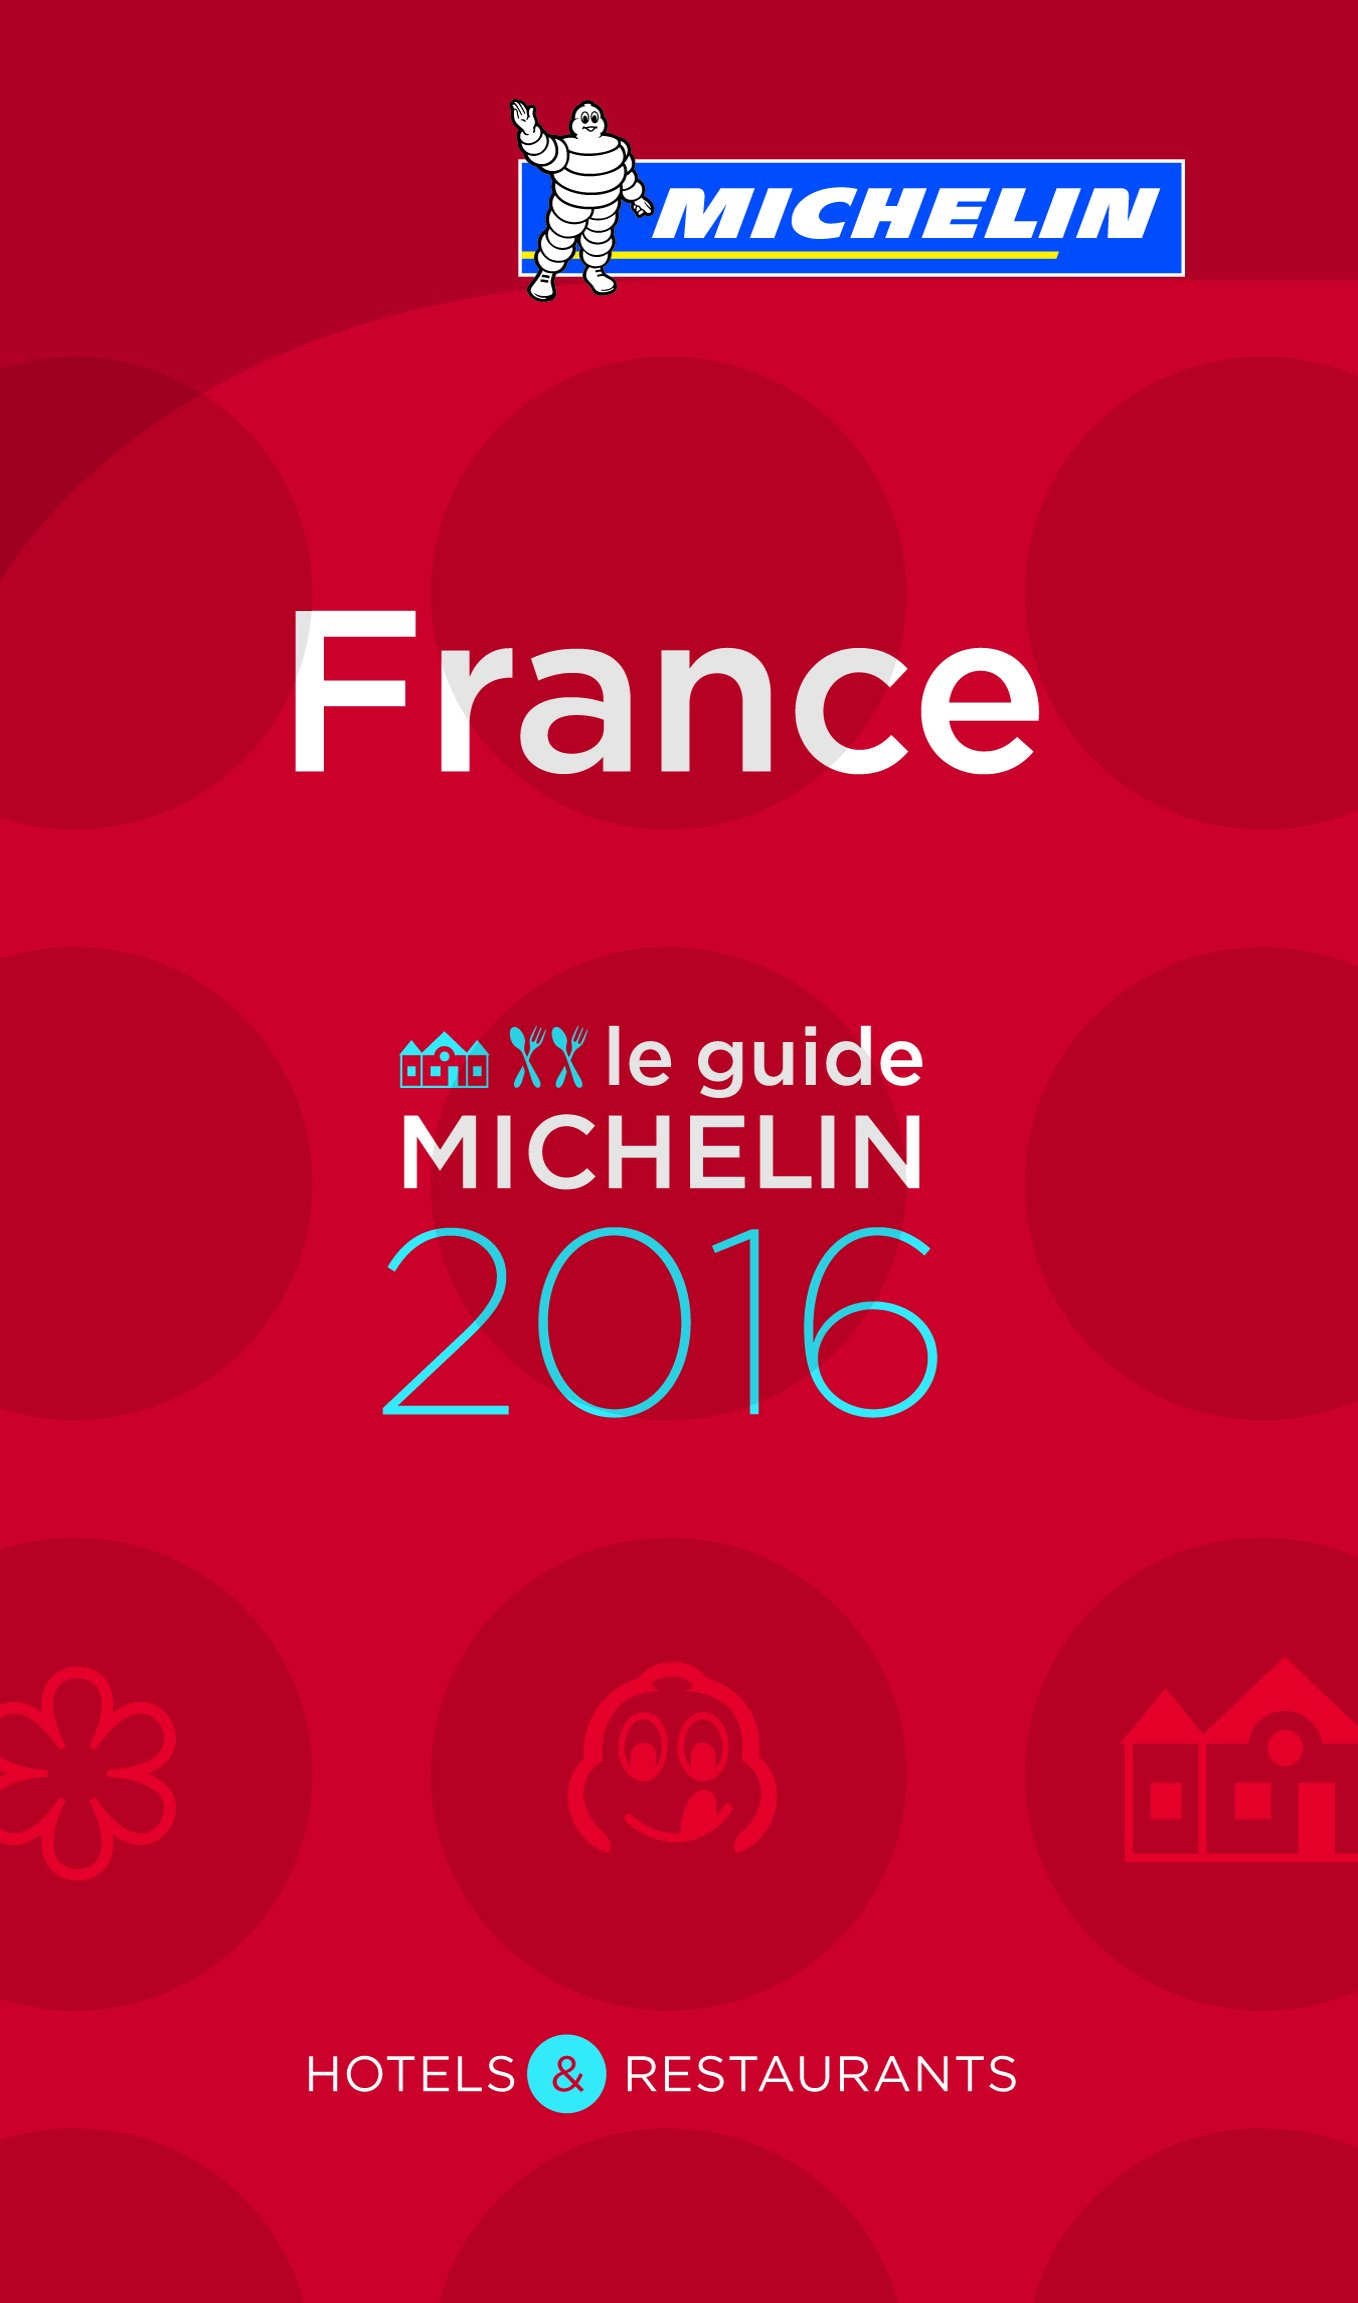 Le guide MICHELIN France 2016 (La Guía Michelin): Amazon.es: Vv.Aa, Vv.Aa: Libros en idiomas extranjeros